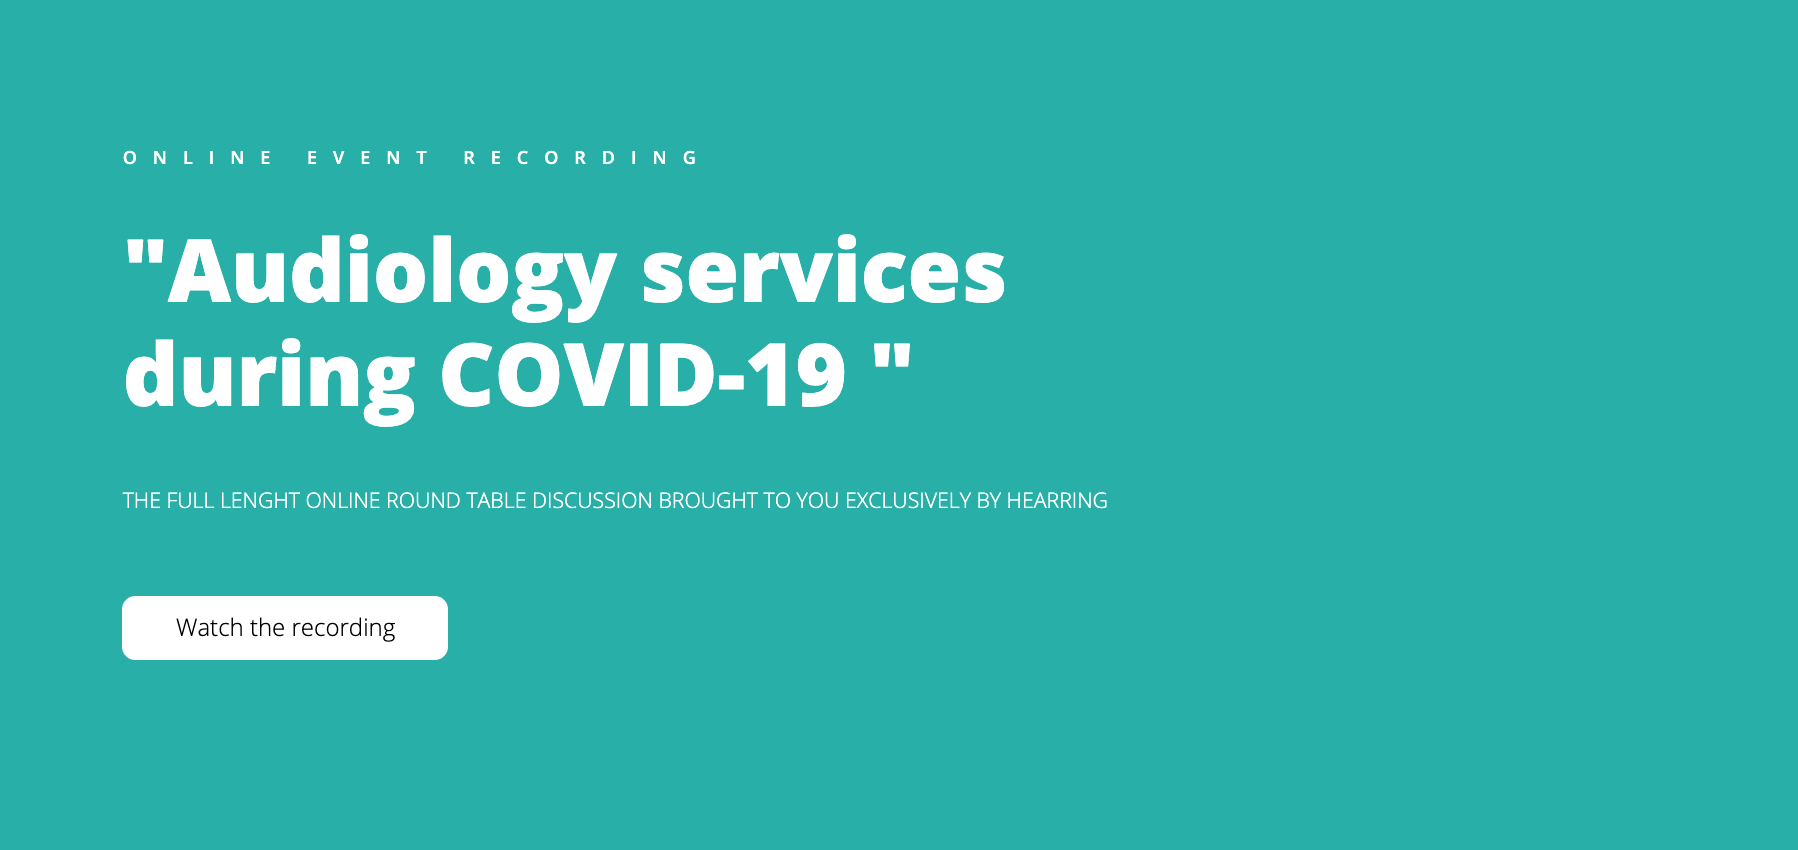 audiology services during covid19 HEARRING